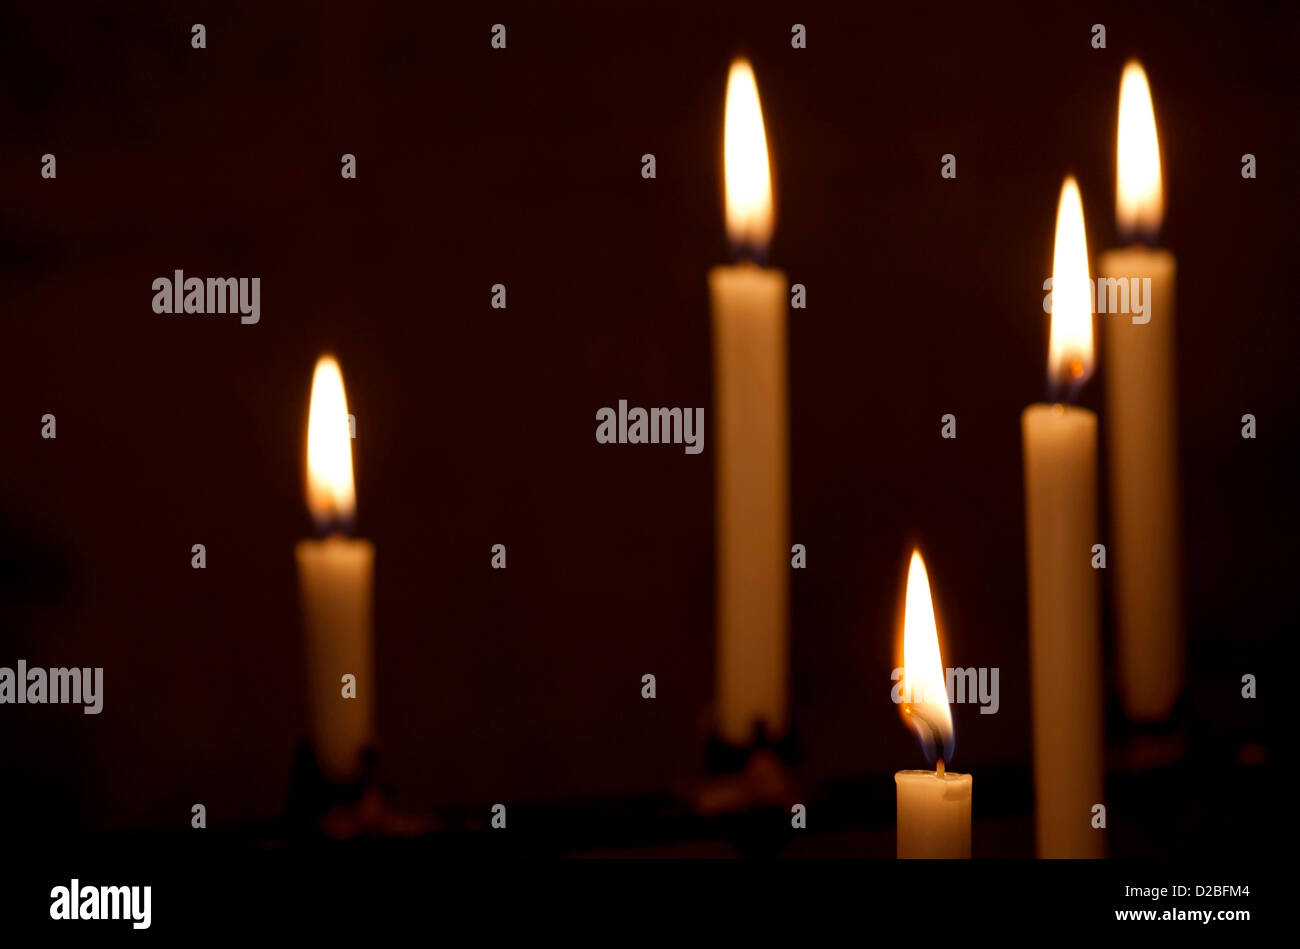 Closeup of five white prayer candles all lit, focus on